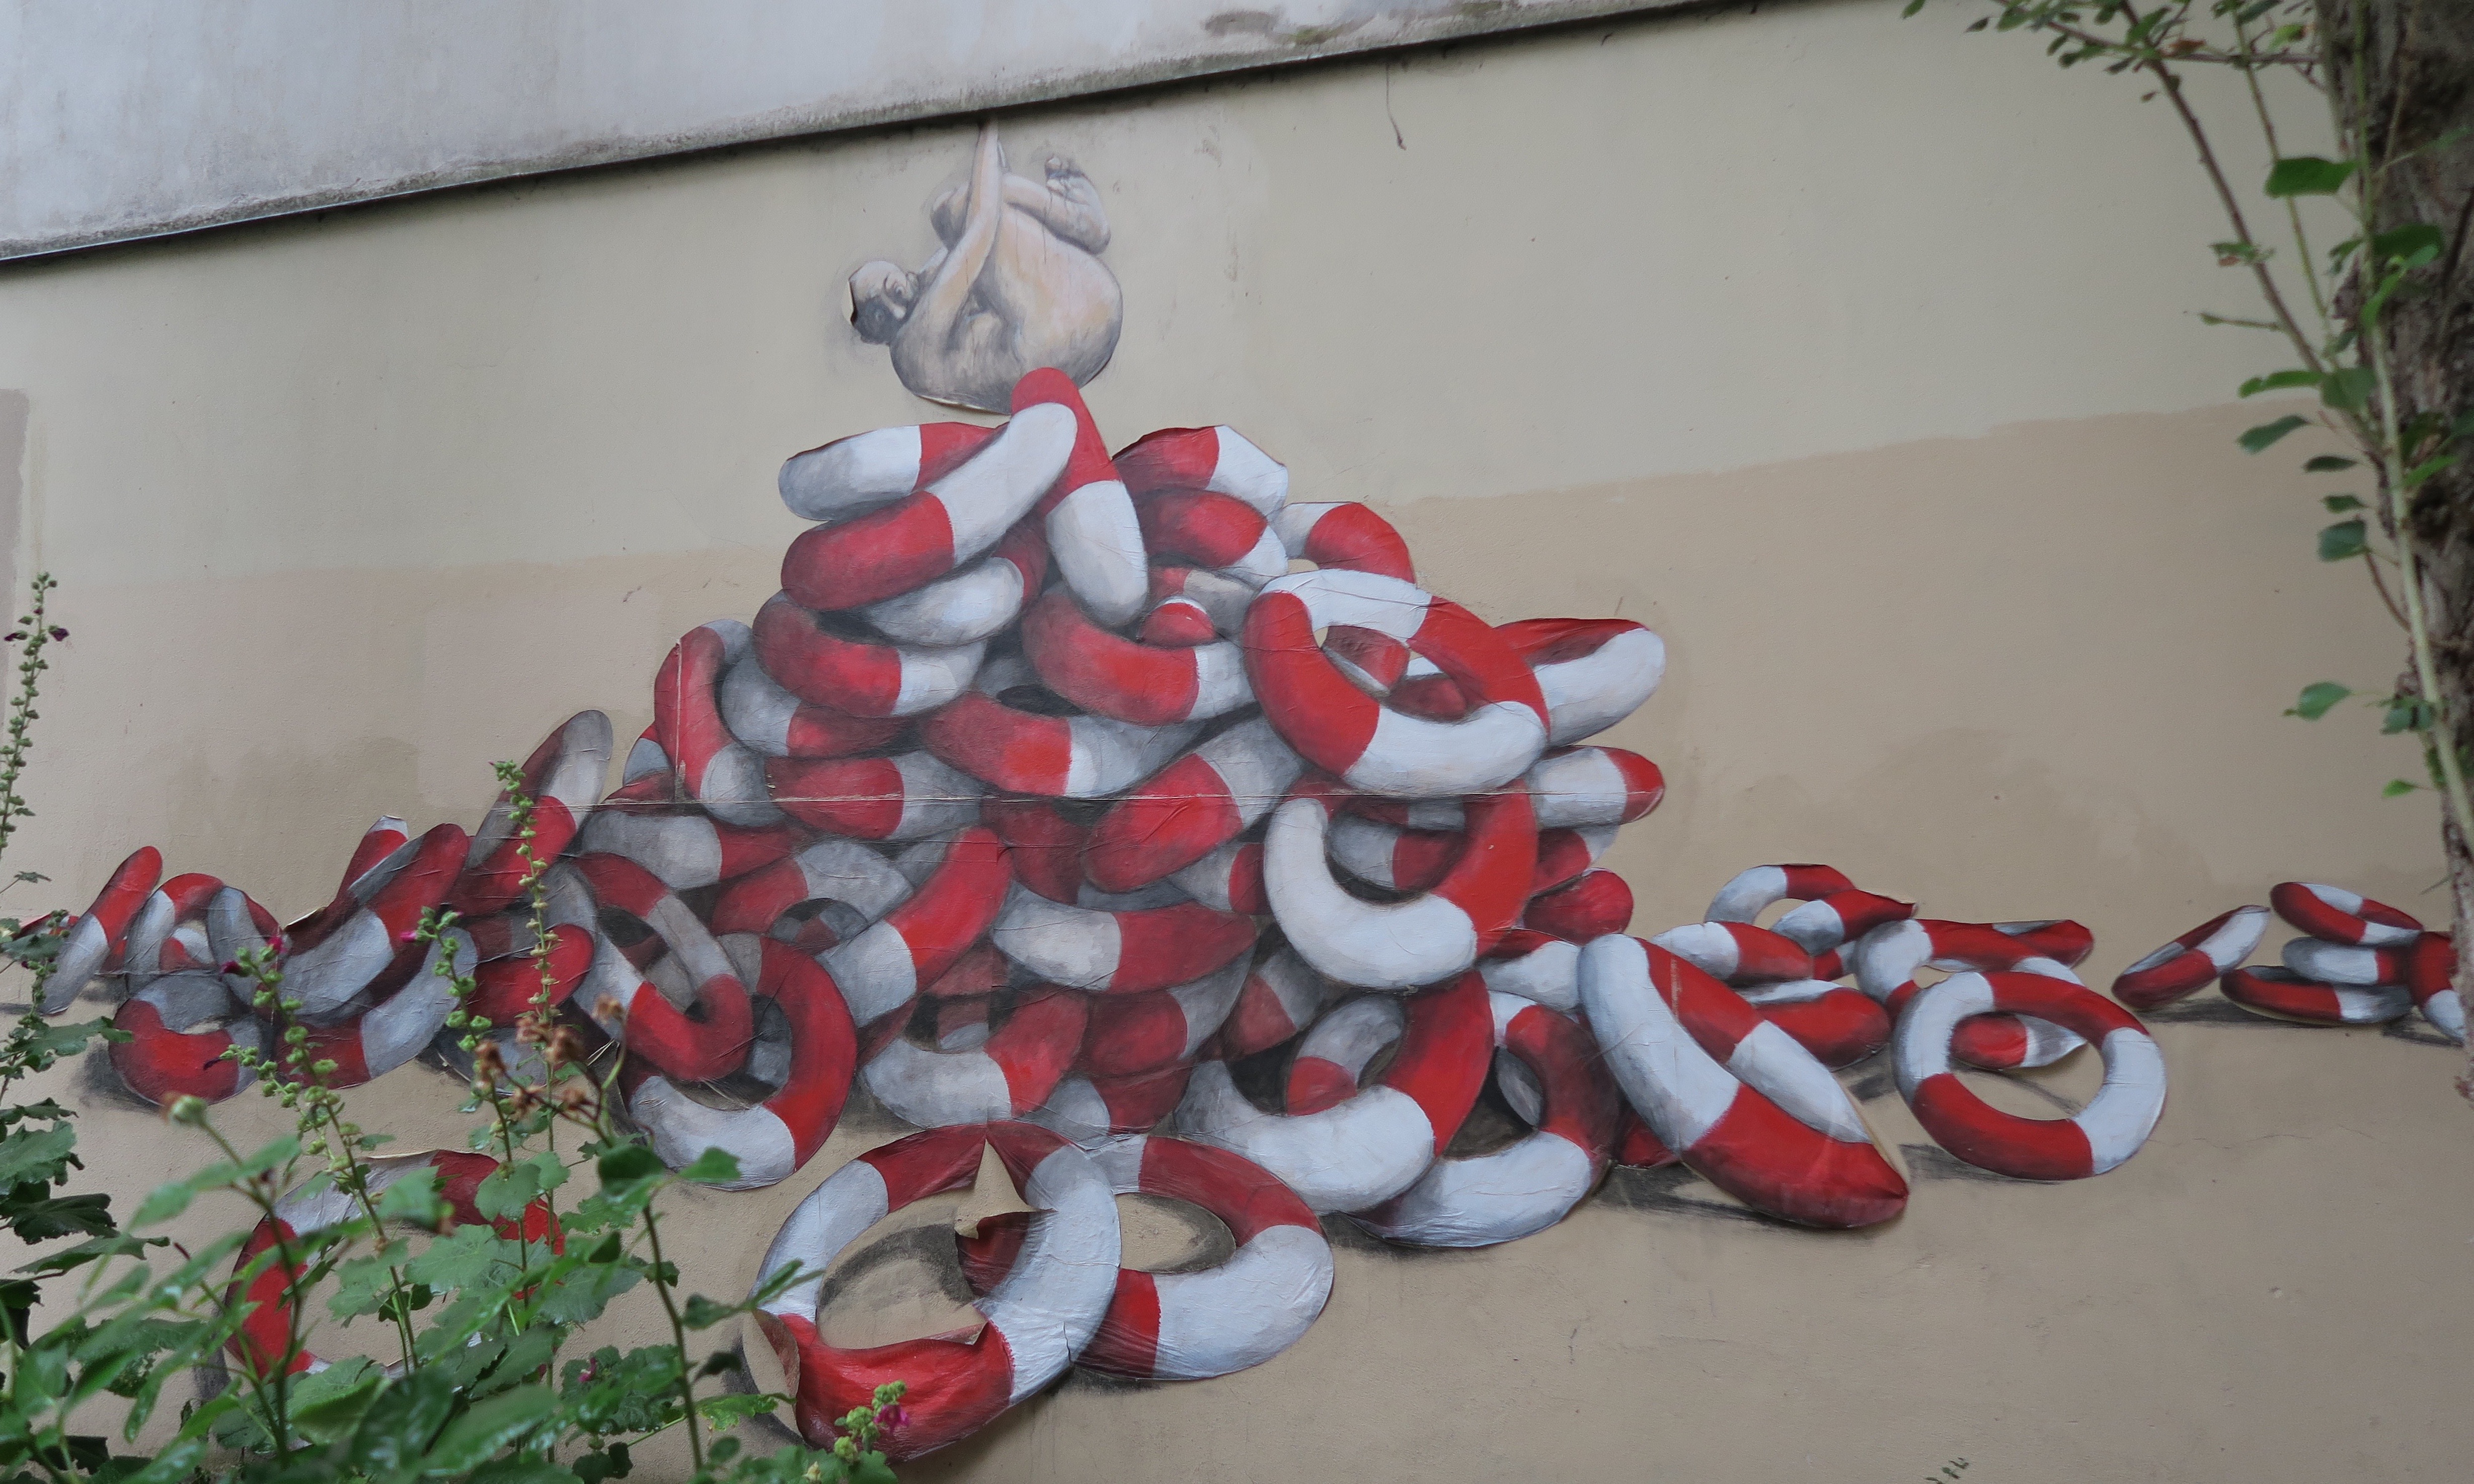 Street art by Philippe Girard with his signature life saver rings, Belleville